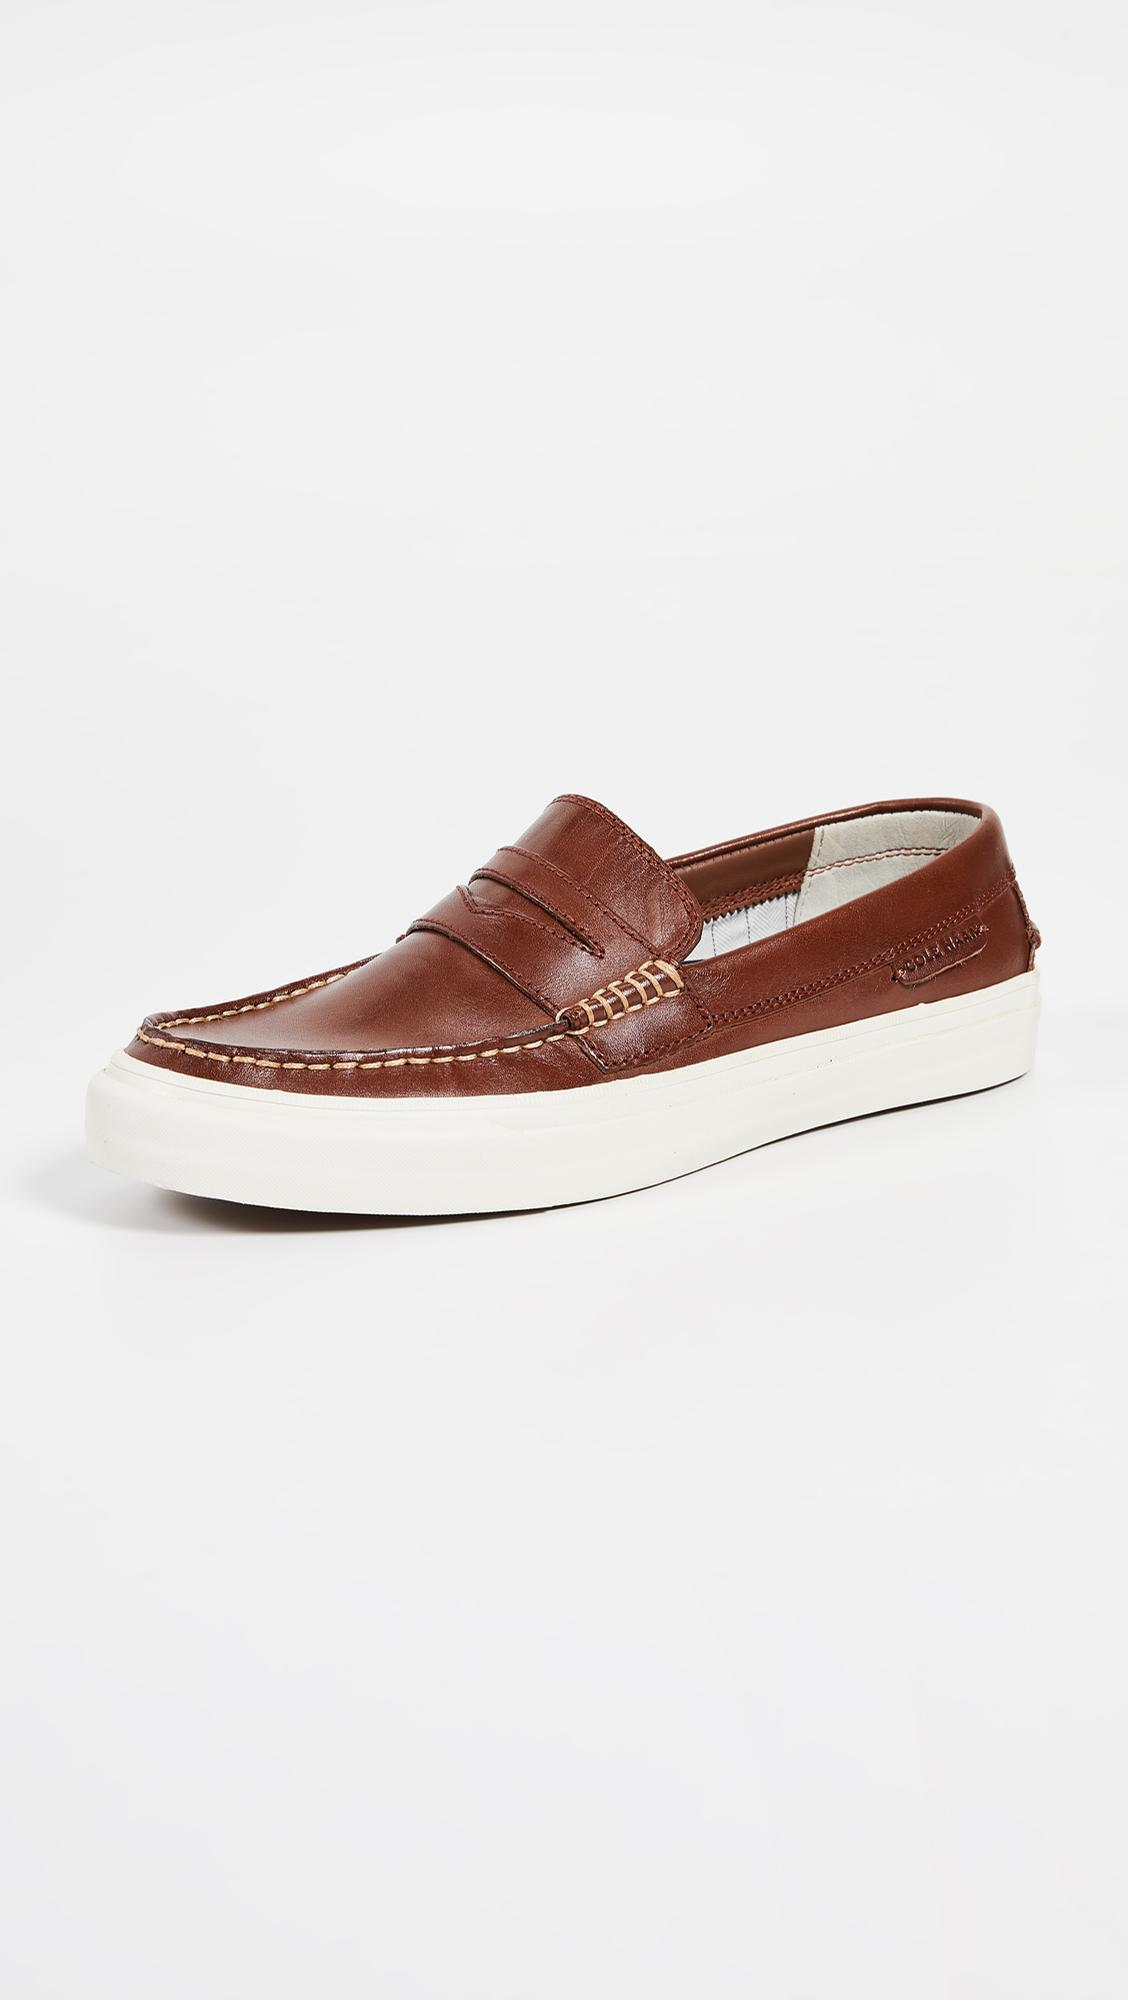 0d7abeeb7ed Lyst - Cole Haan Pinch Weekender Lx Penny Loafers for Men